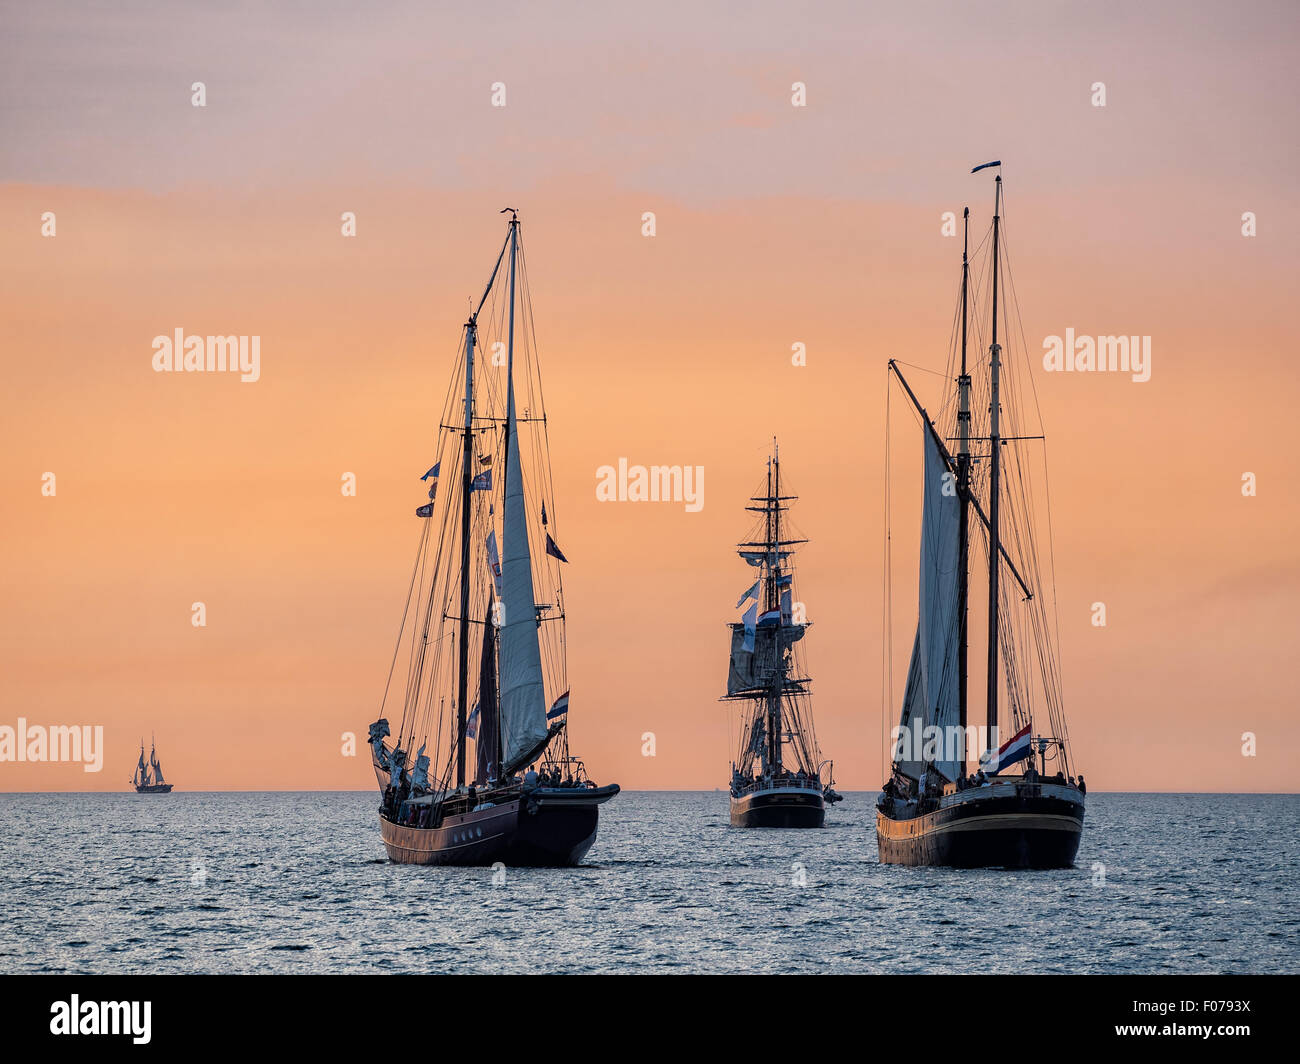 Sailing ships on the Baltic Sea in Rostock (Germany) - Stock Image